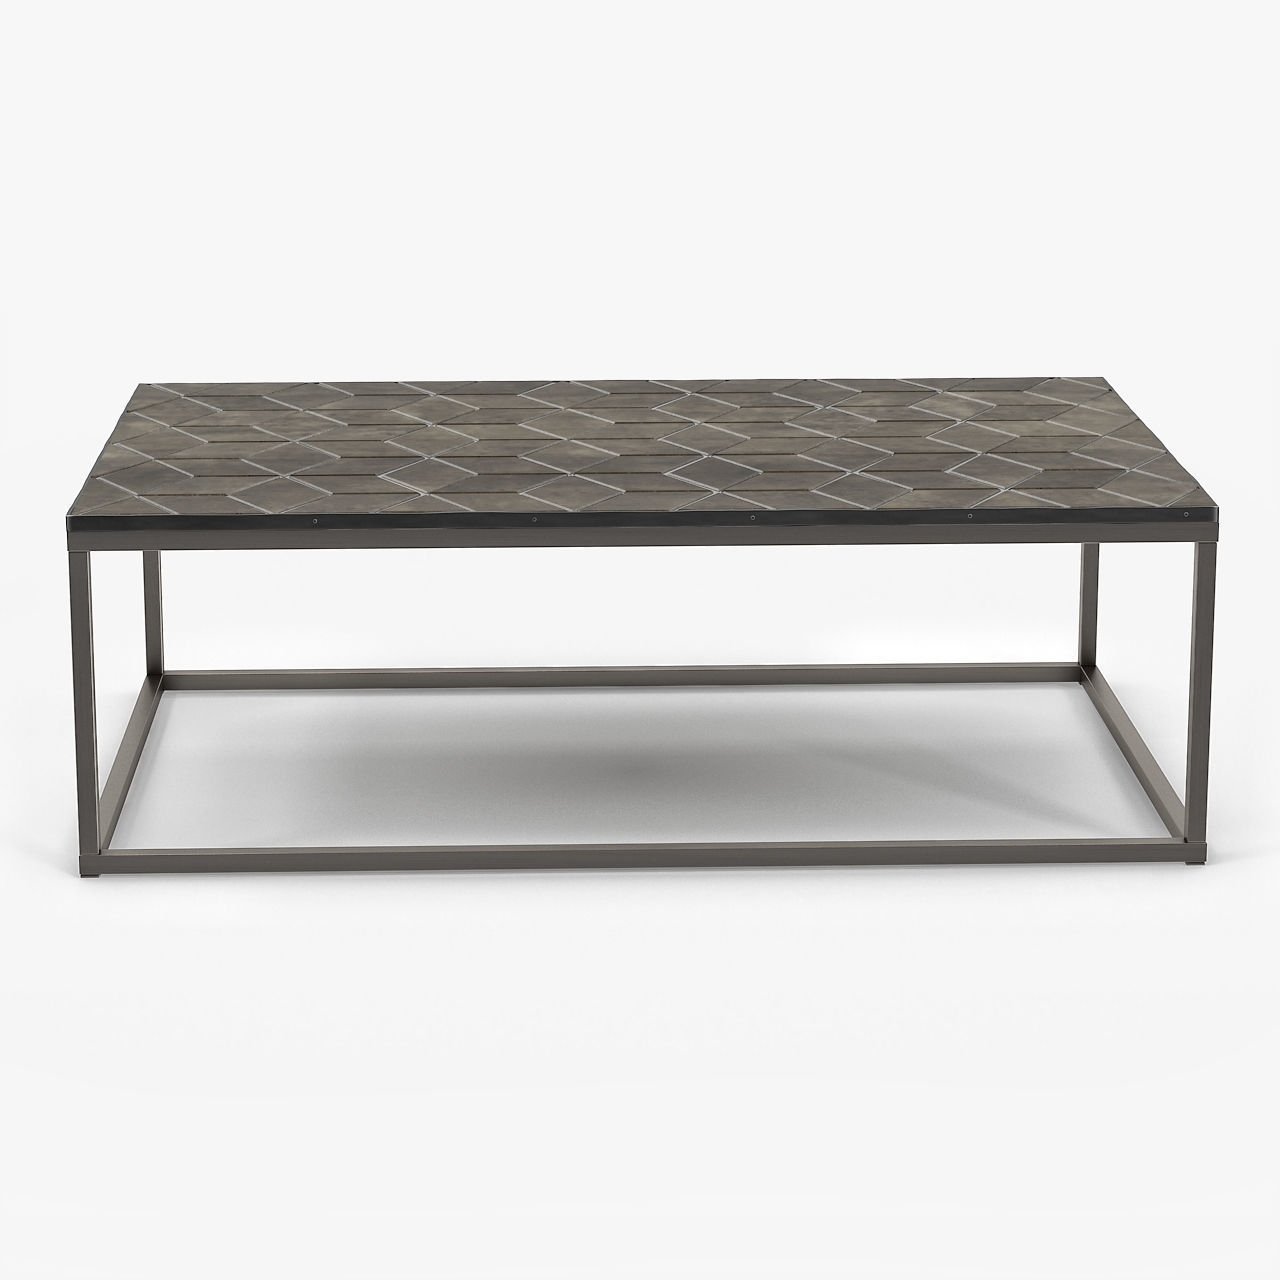 Amazing Parquet Coffee Table With Restoration Hardware Metall Pertaining To Most Popular Parquet Coffee Tables (Gallery 14 of 20)